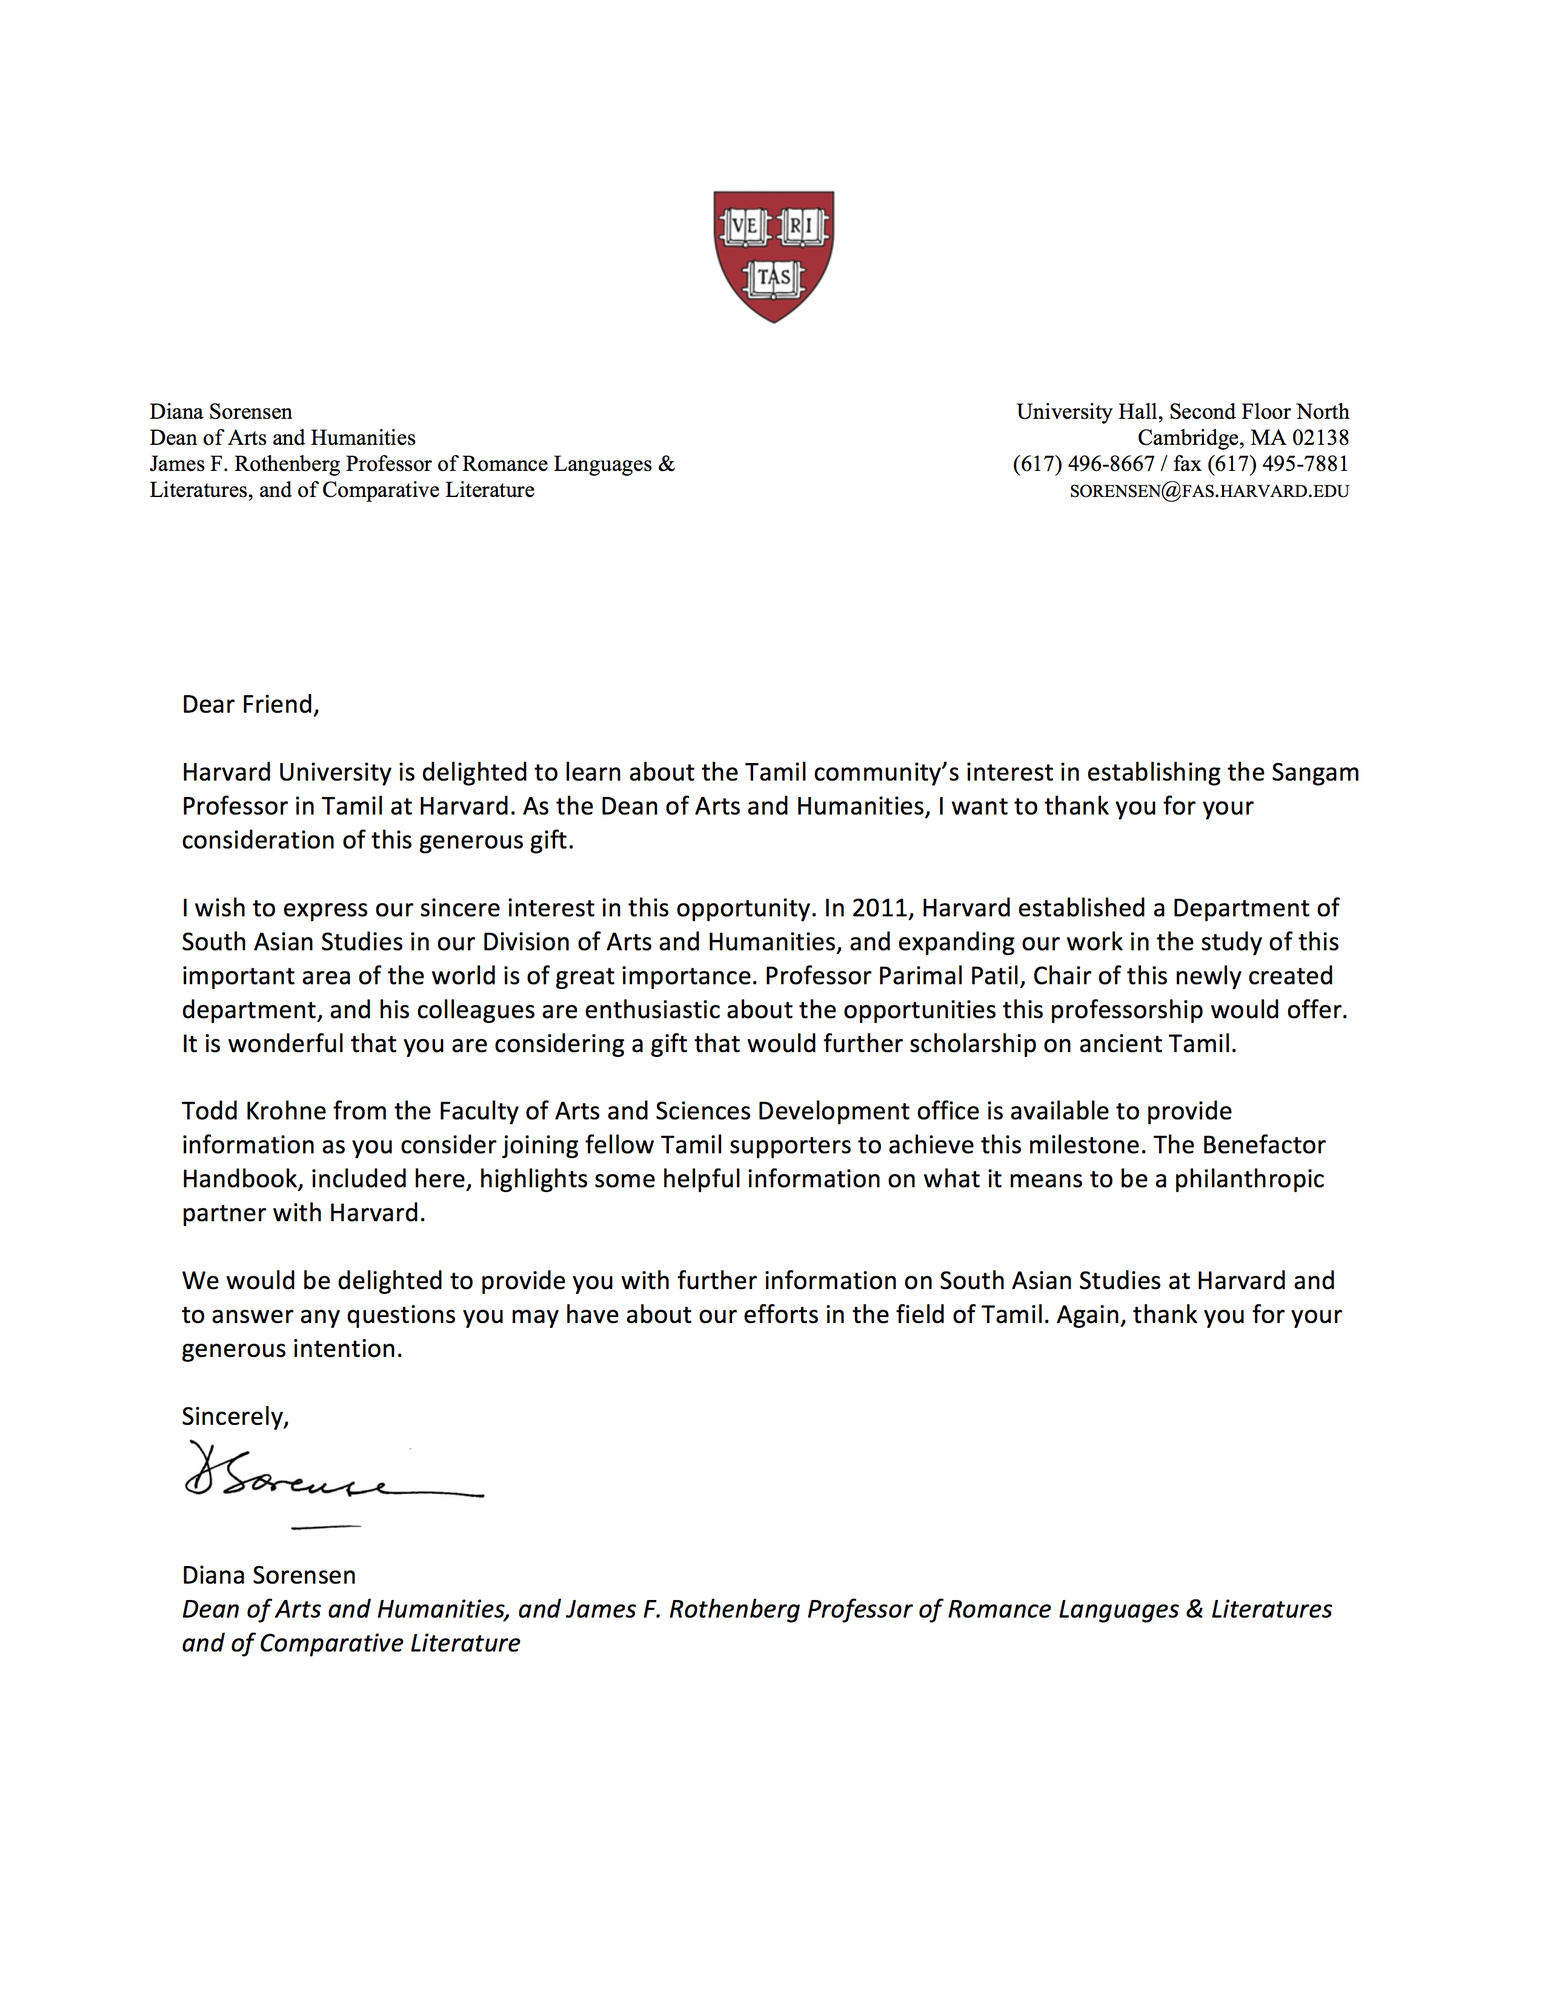 Letter from Diana Sorensen, Dean of Arts and Humanities